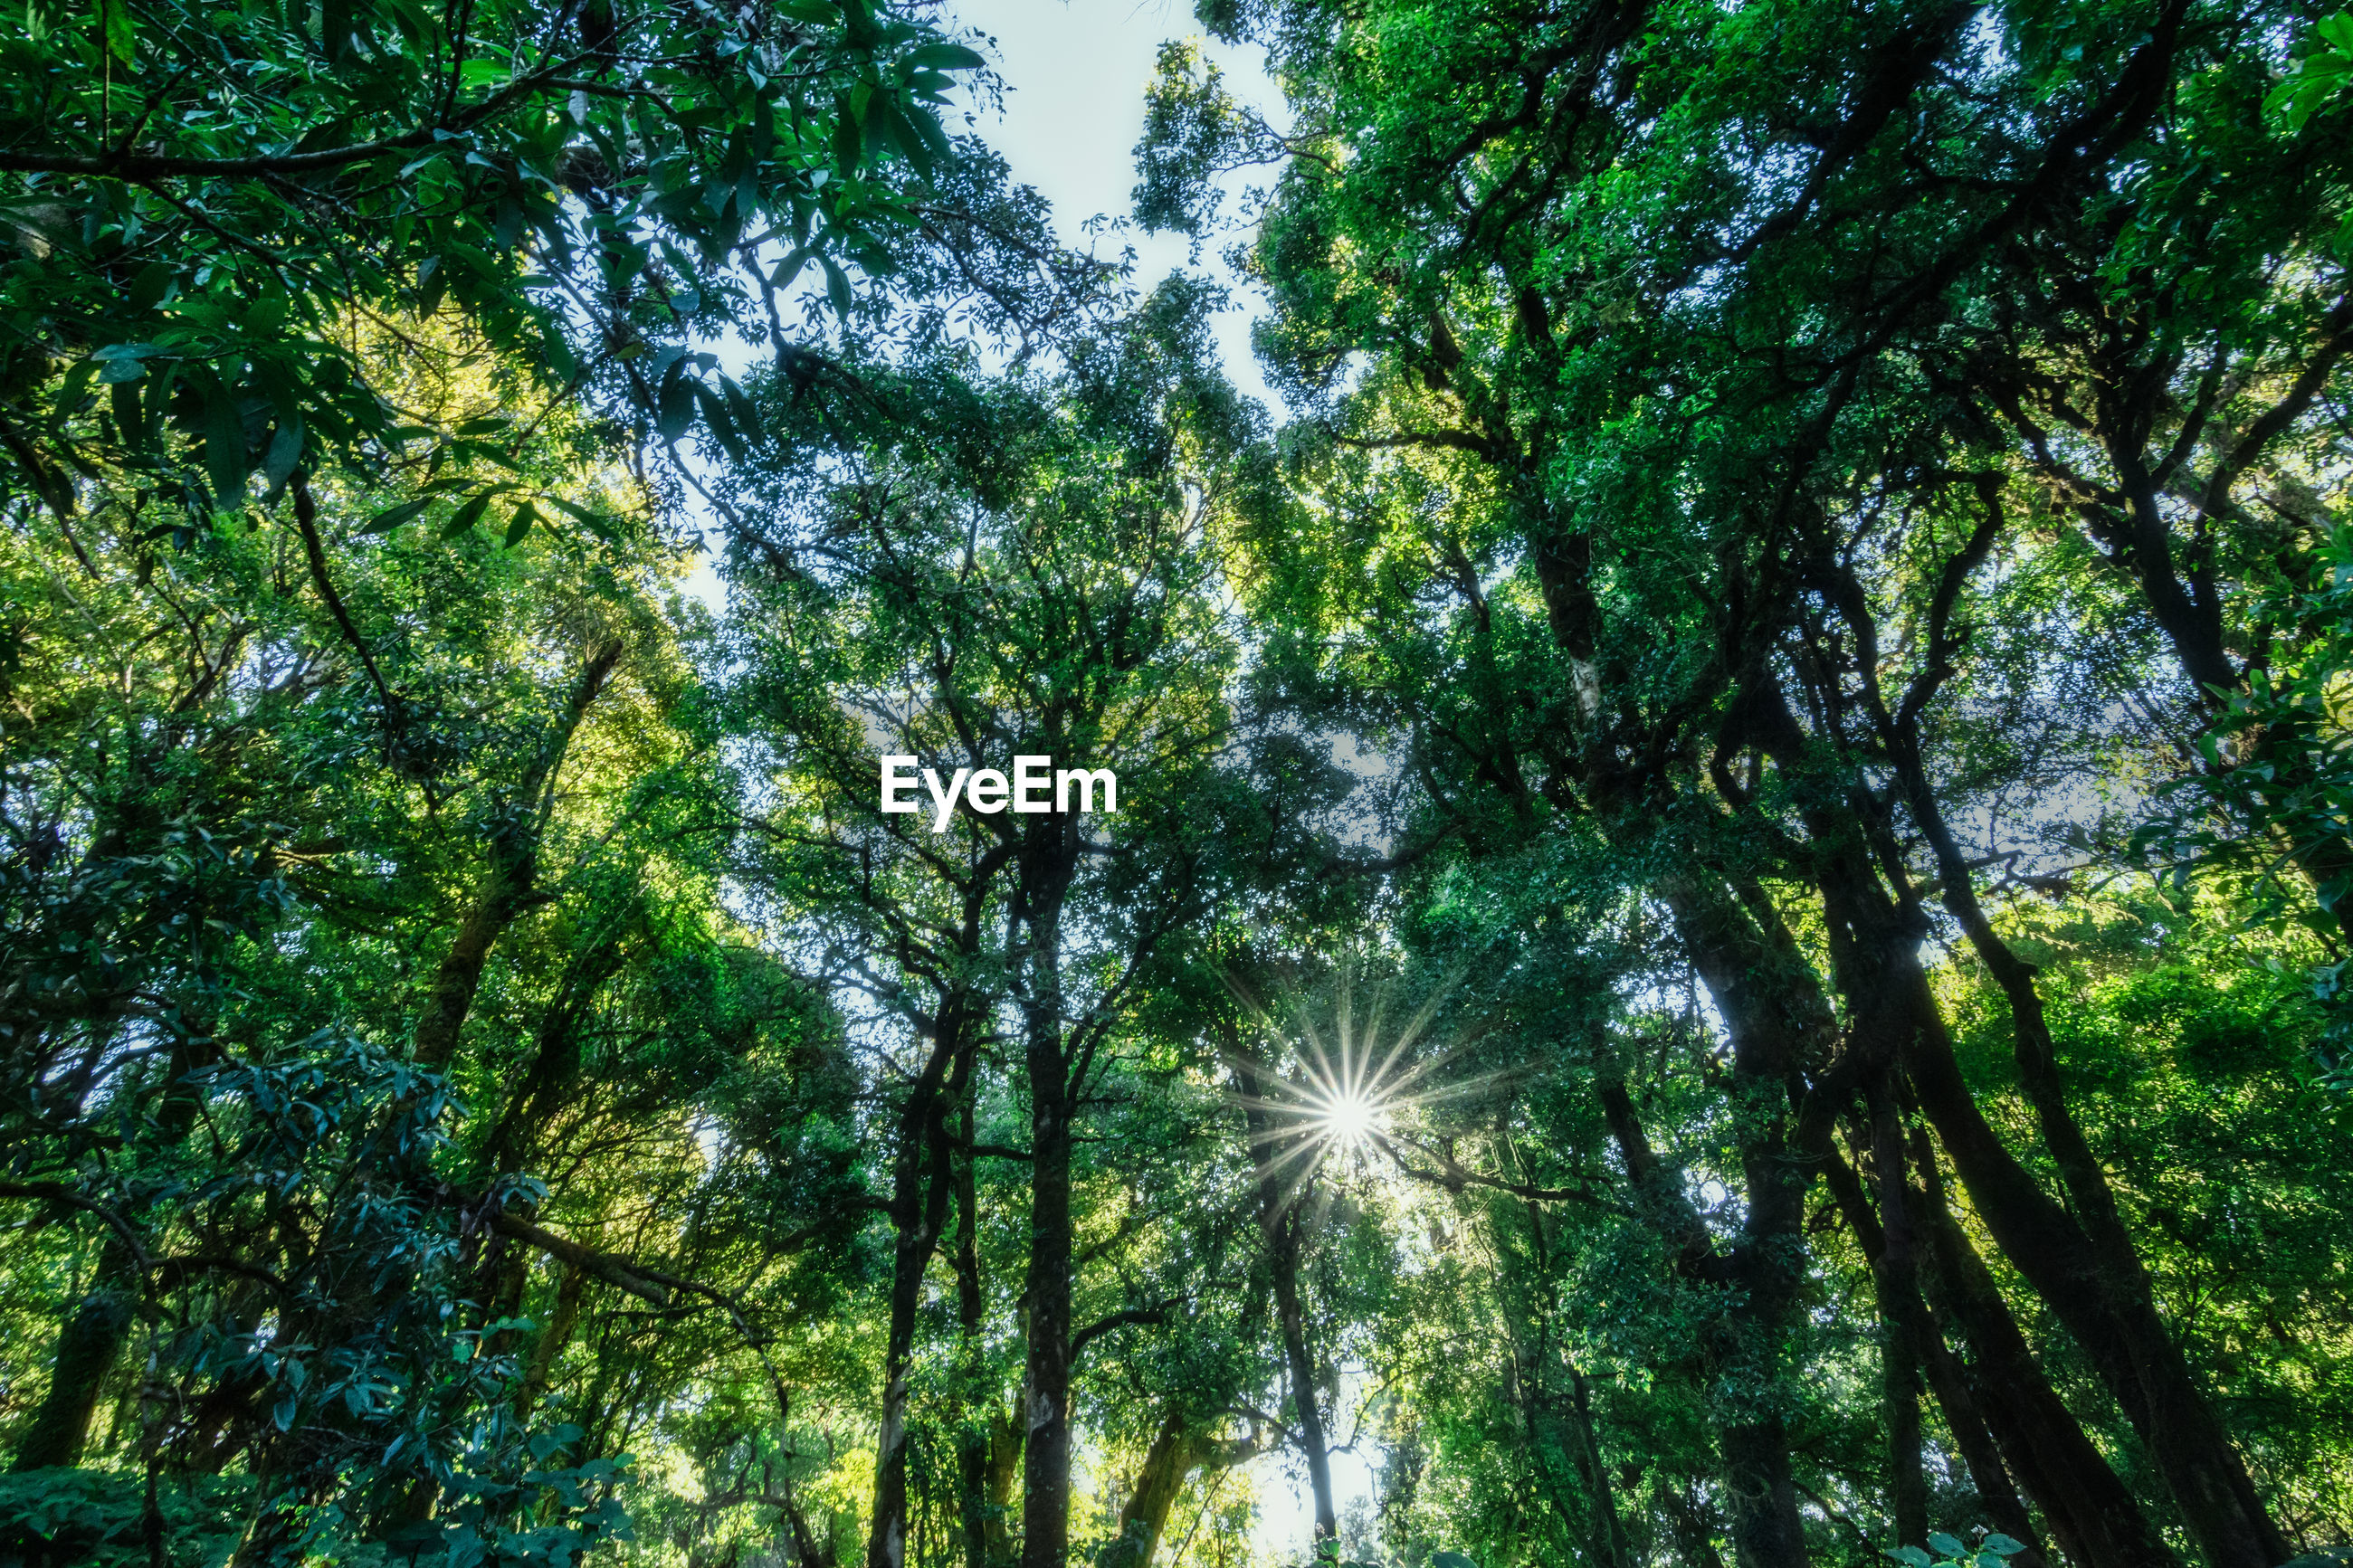 LOW ANGLE VIEW OF SUN STREAMING THROUGH TREES IN FOREST